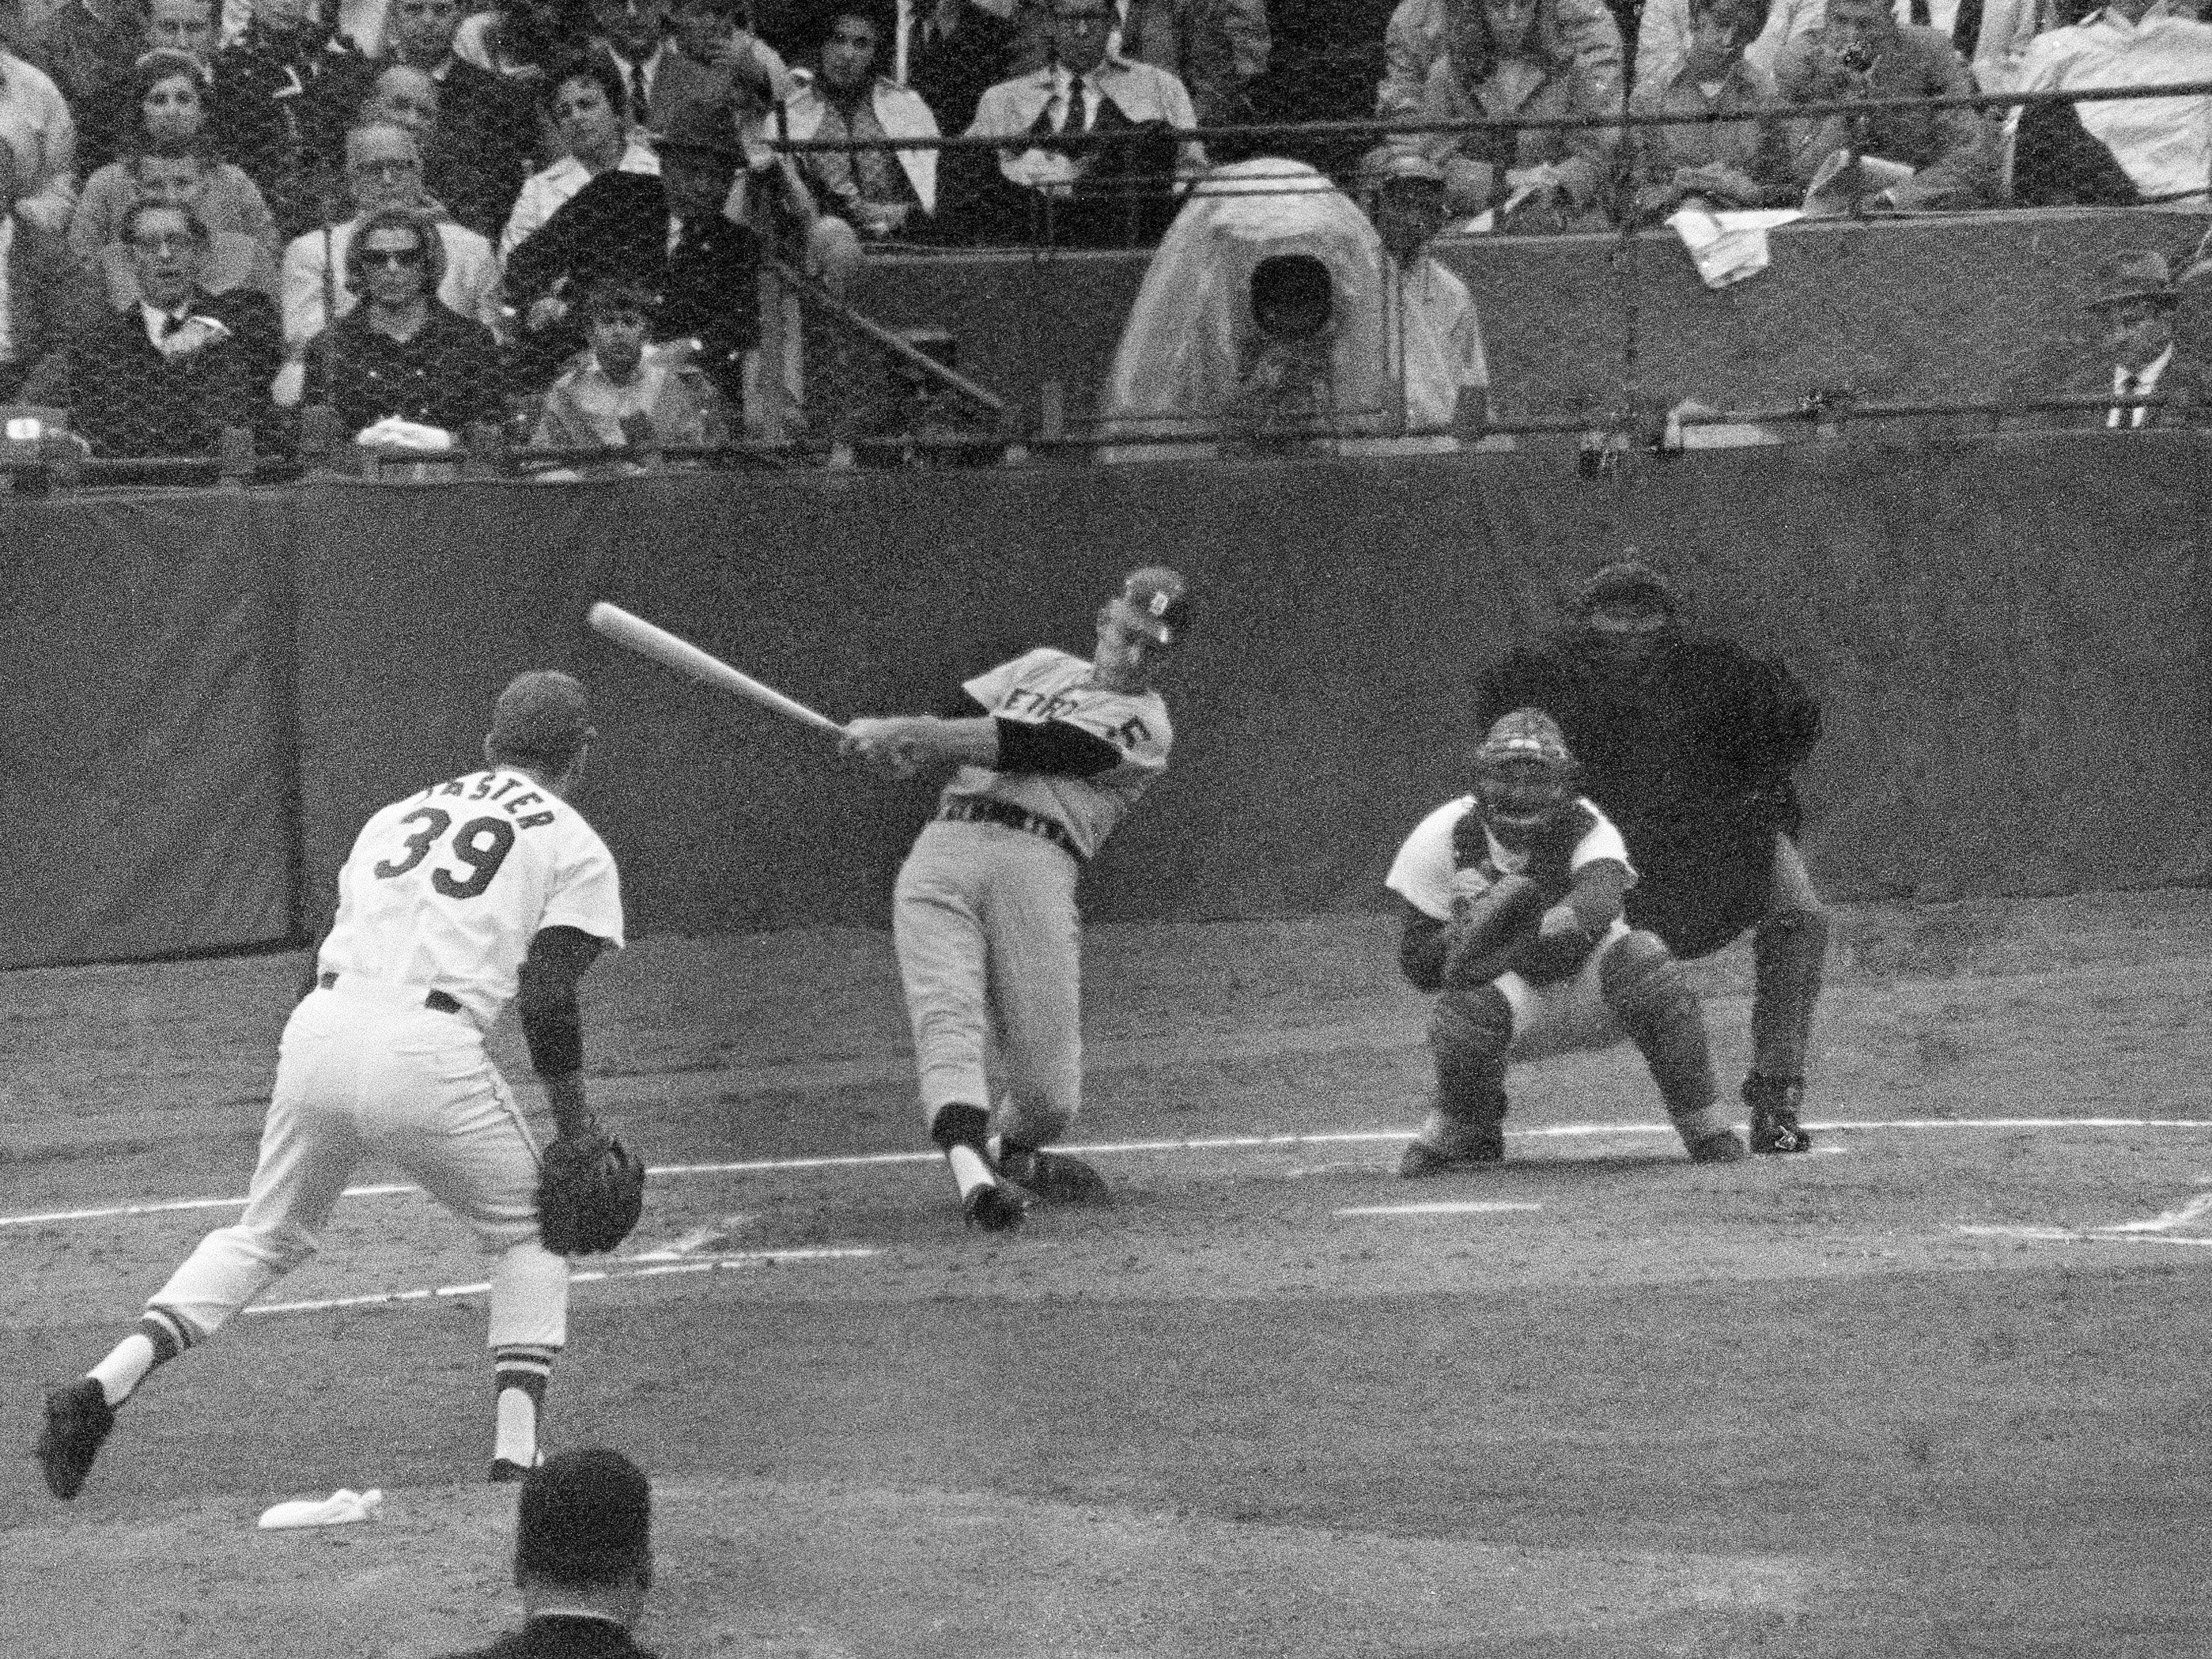 Jim Northrup of the Detroit Tigers hits a grand slam homer in the third inning of Game 6 of the World Series off Larry Jaster of the St. Louis Cardinals on Oct. 9, 1968 in St. Louis. Watching is Cards catcher Tim McCarver.